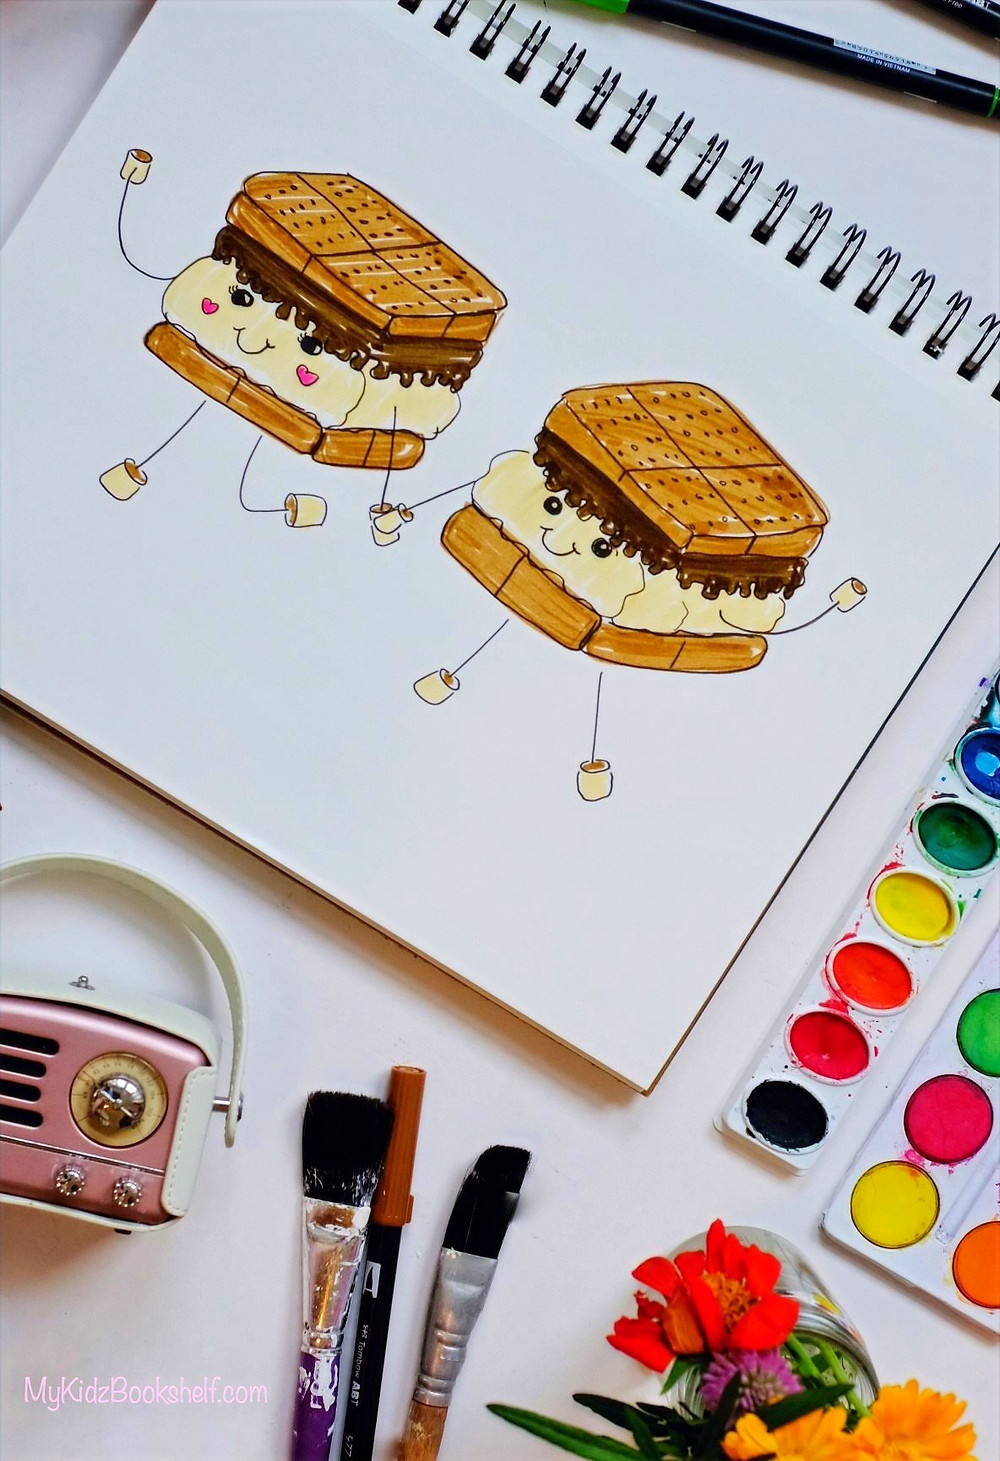 S'more friends illustration tutorial